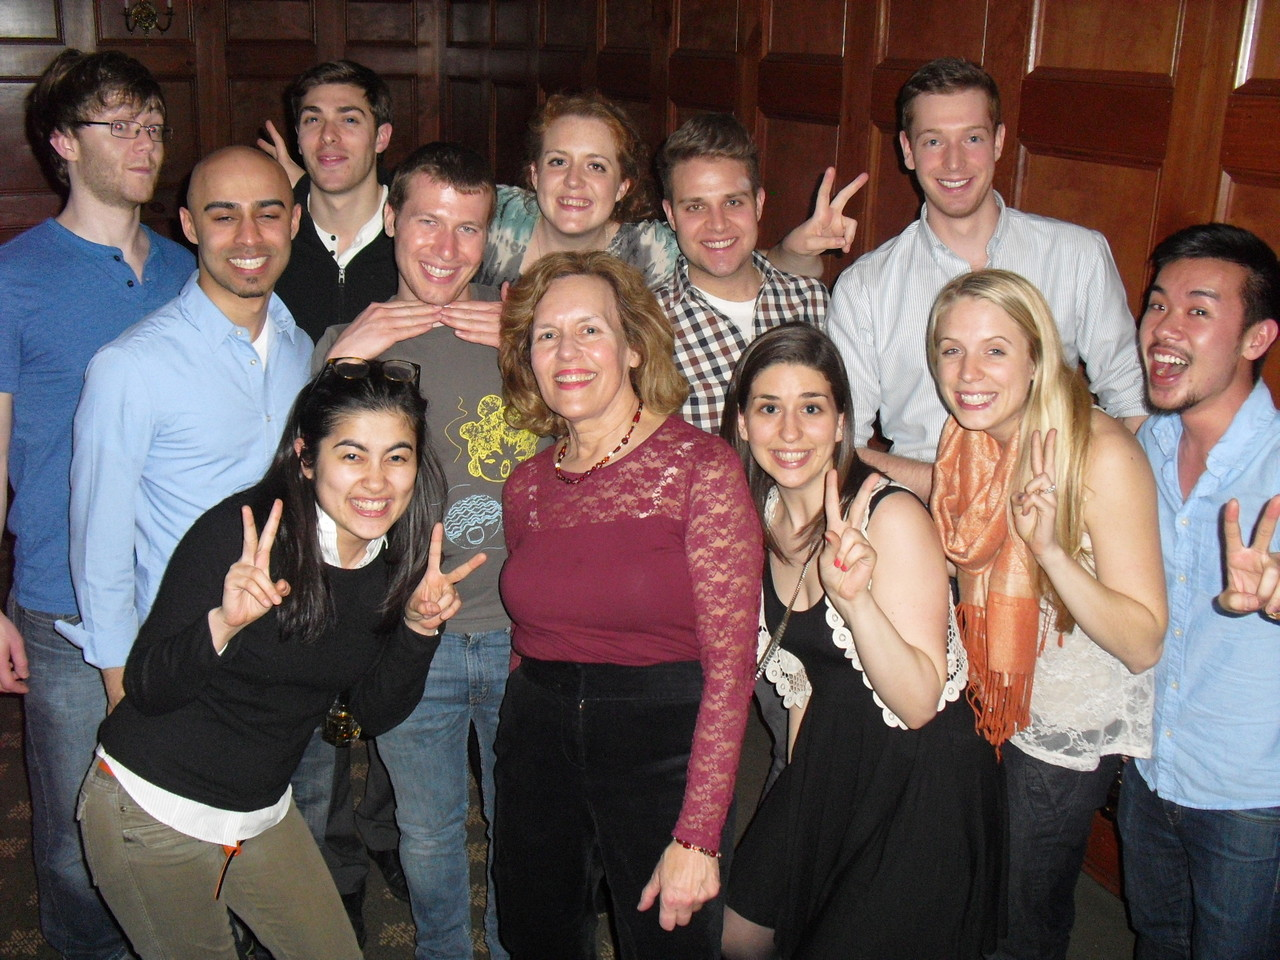 Lorraine Gudas with Second Year Graduate Students in Pharmacology, 4-2013, at the Retreat Party